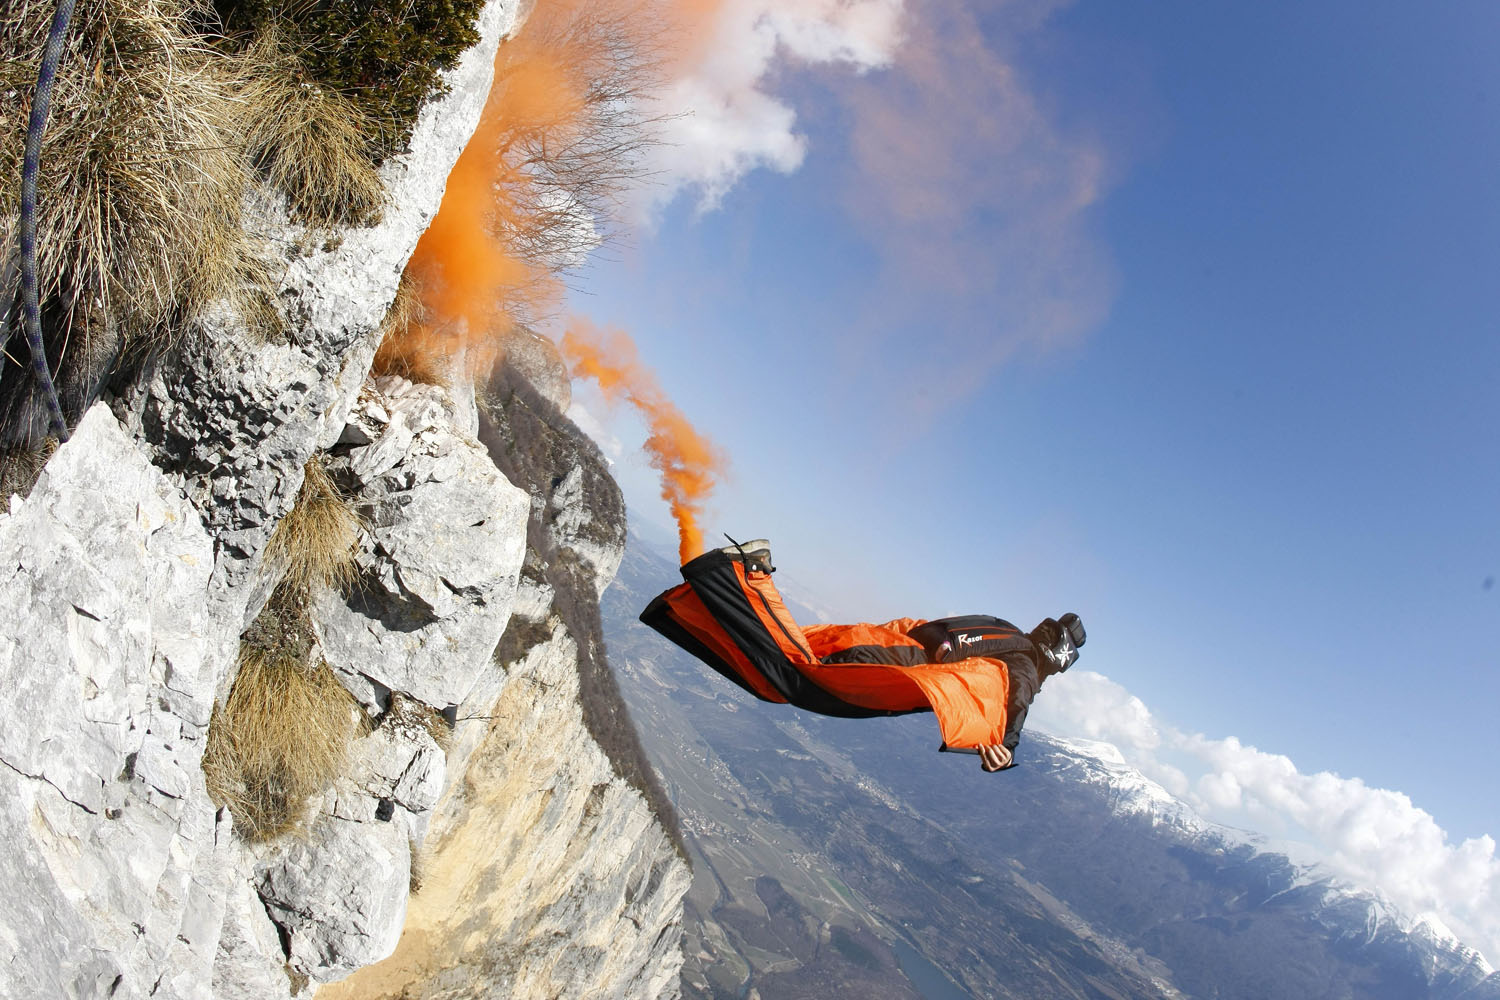 James Boole jumps from the top of Monte Trento peak in Trento, Italy.